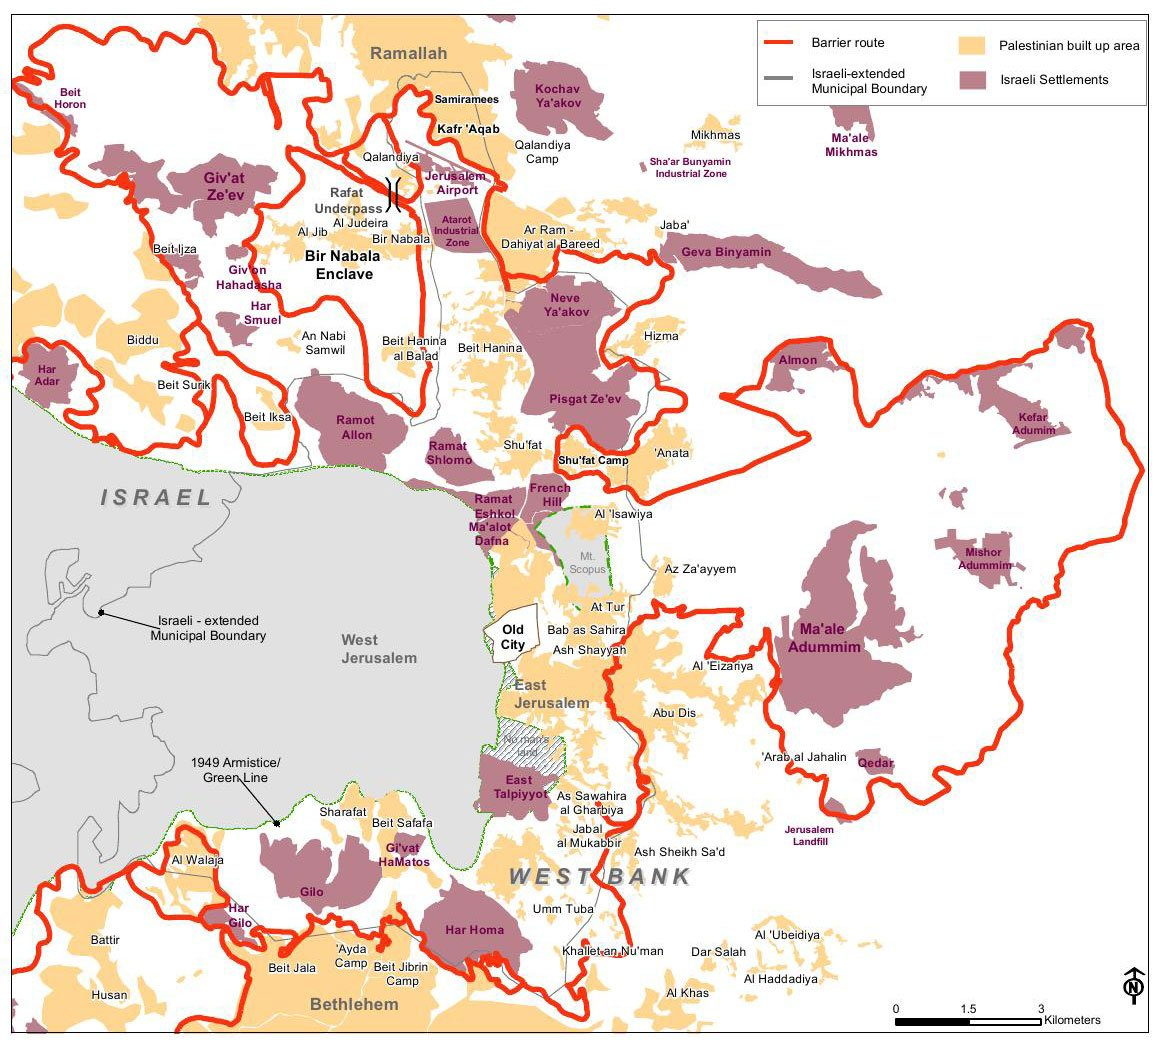 Israel's settlements: 50 years of land theft